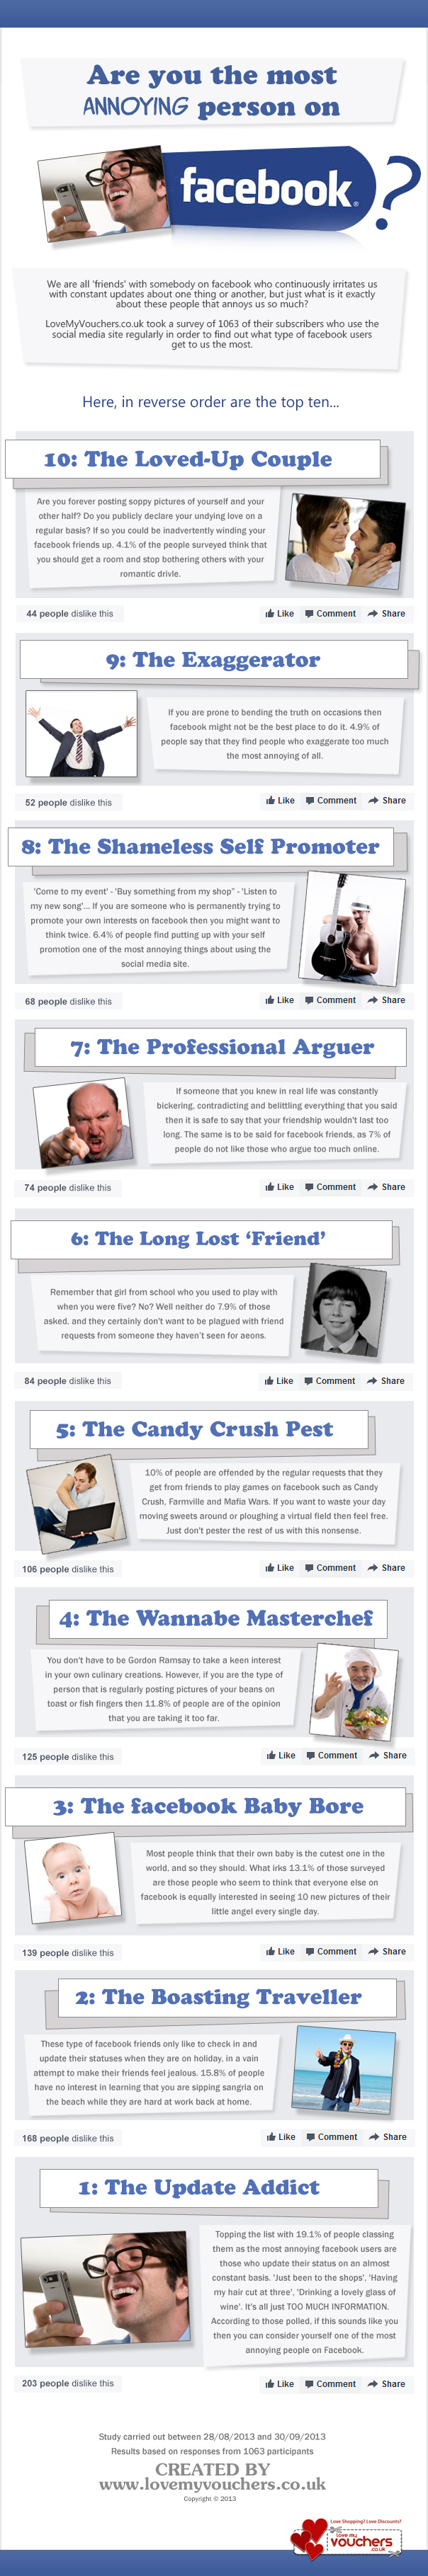 the-The-10-most-annoying-people-on-facebook